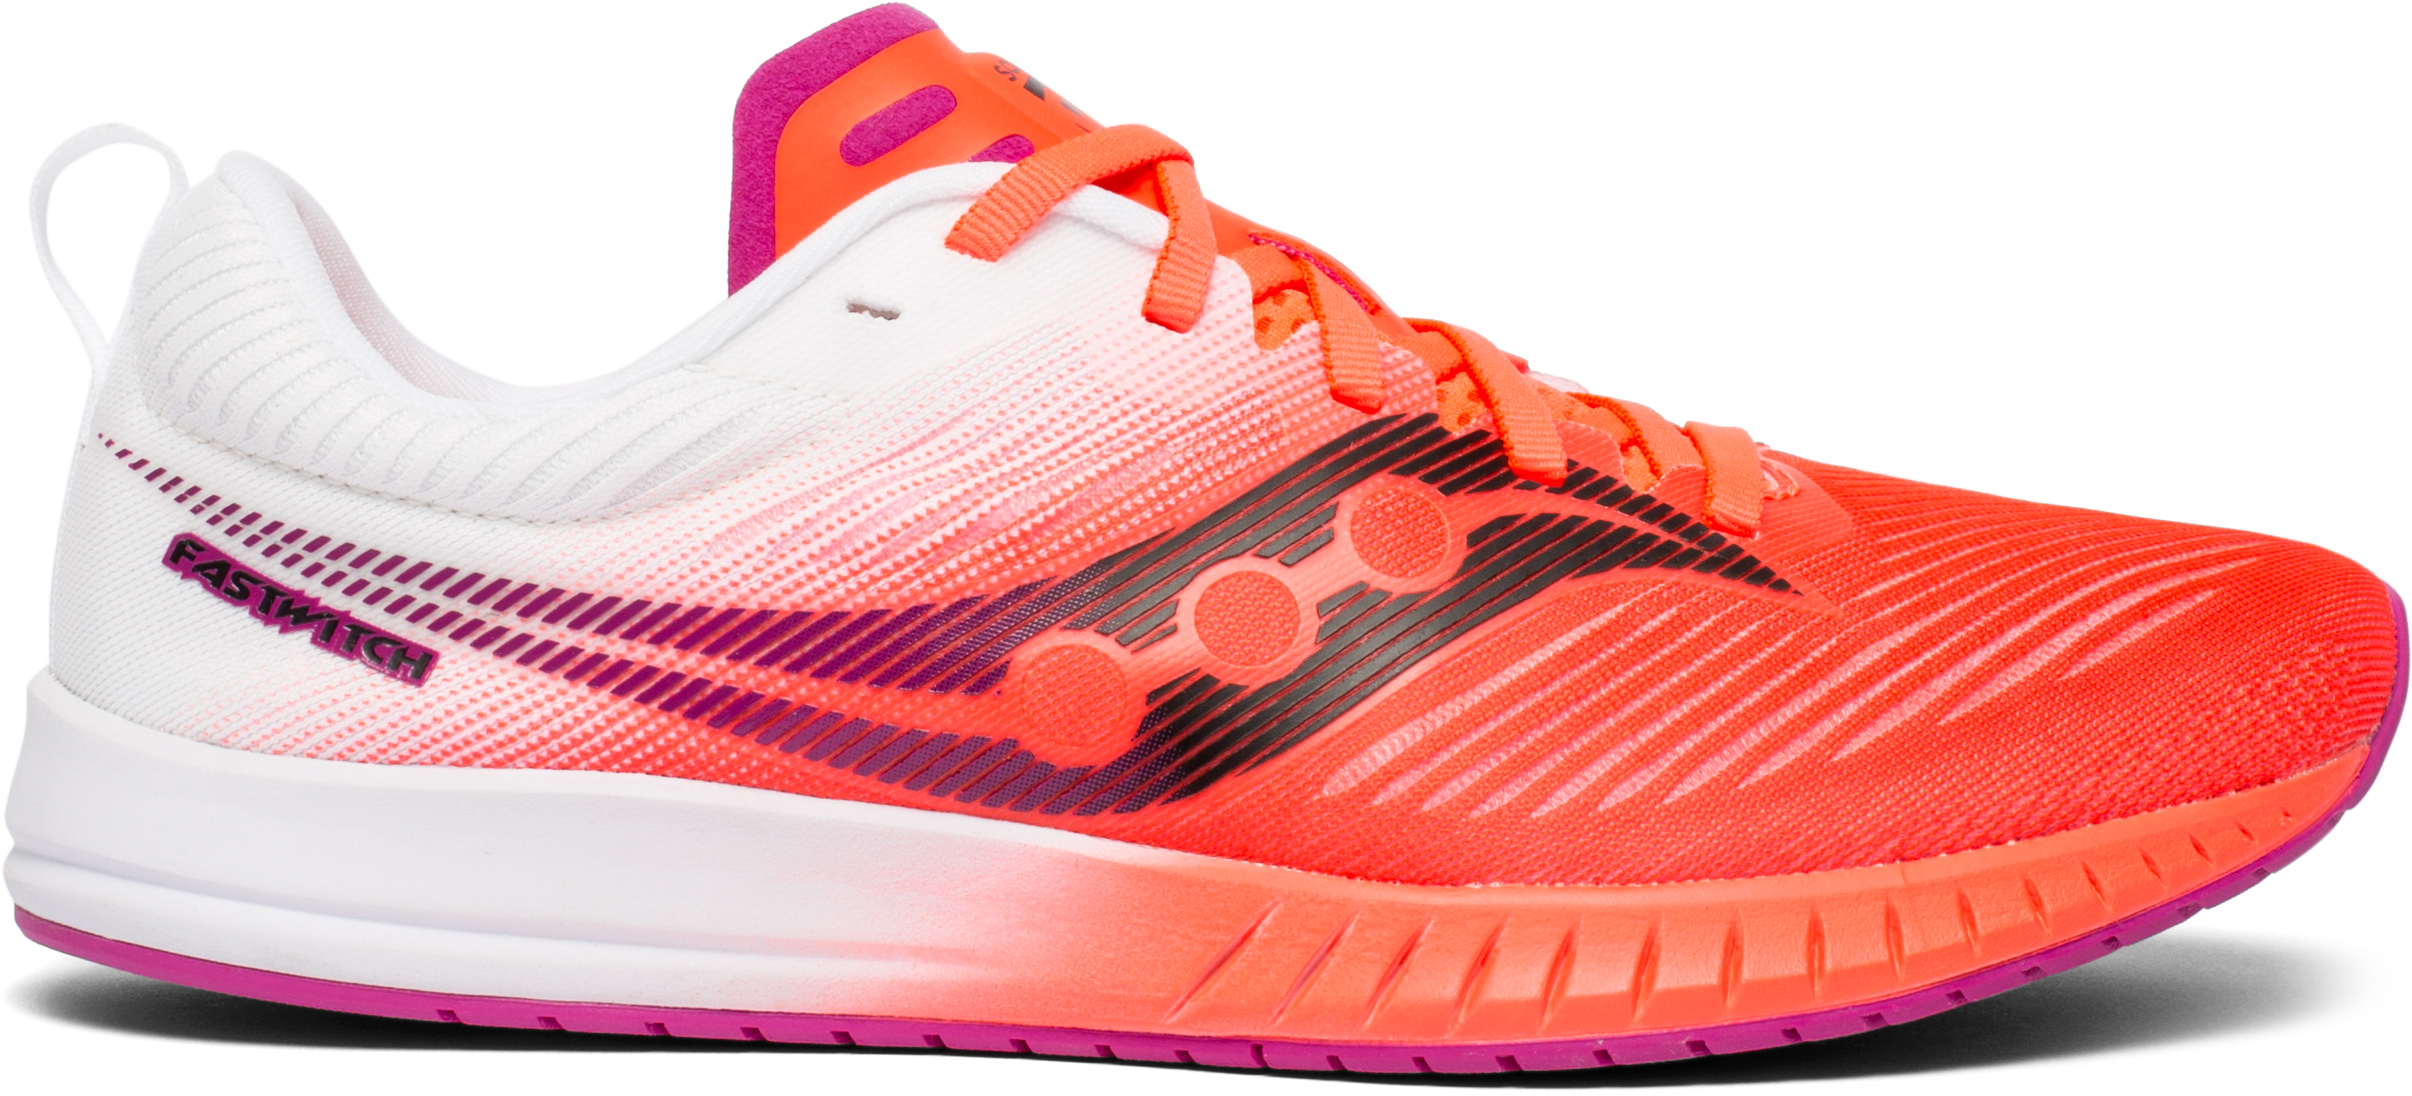 saucony lightweight shoes